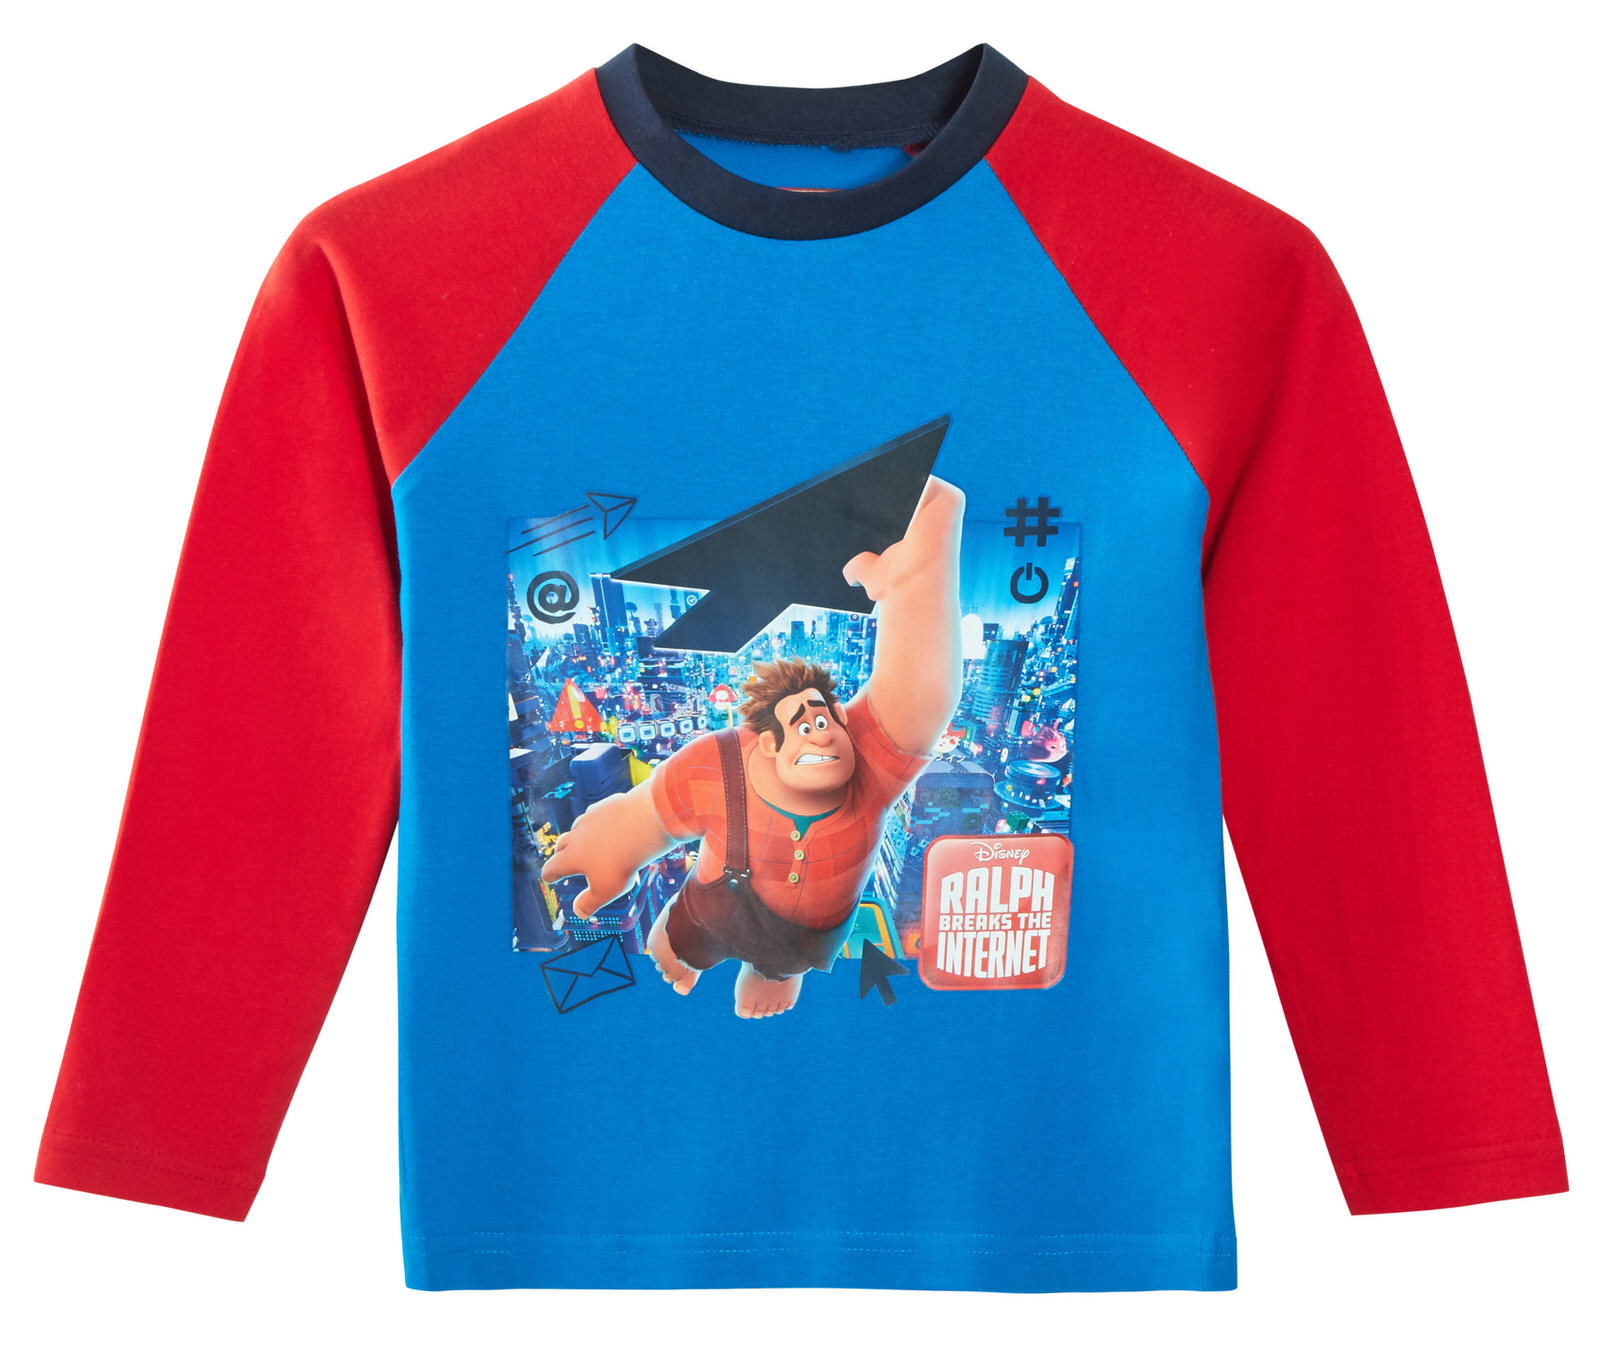 Wreck It Ralph 2 Boys Long Pyjamas Kids 2 Piece Character Pjs Set Gift Size